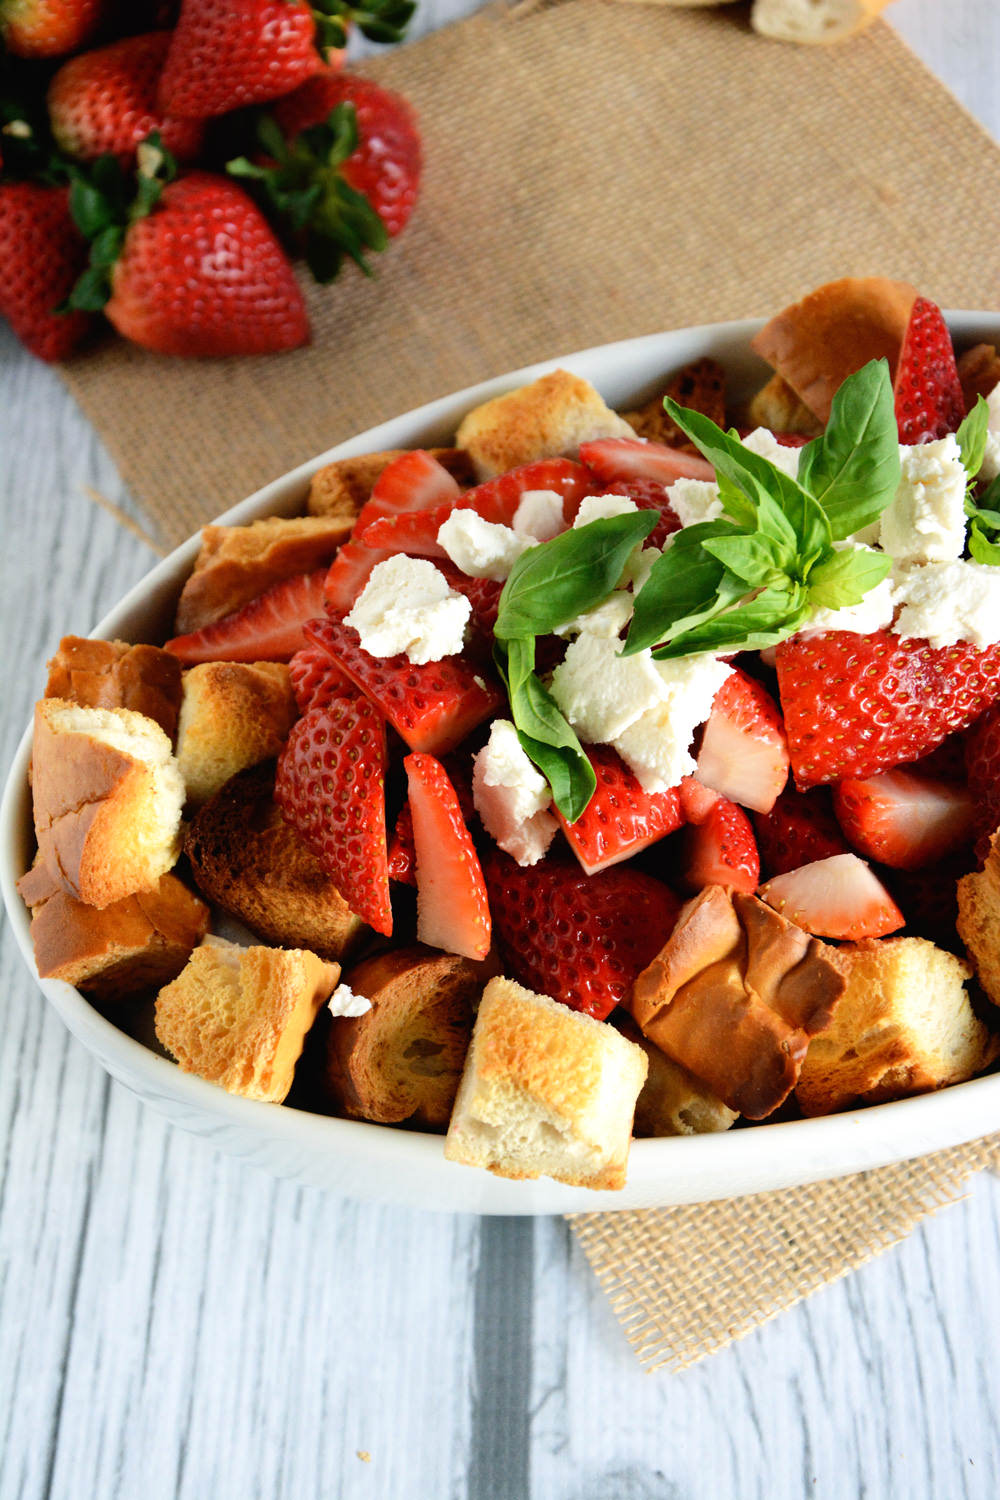 Honey & Strawberry Panzanella Salad | The Housewife in Training Files